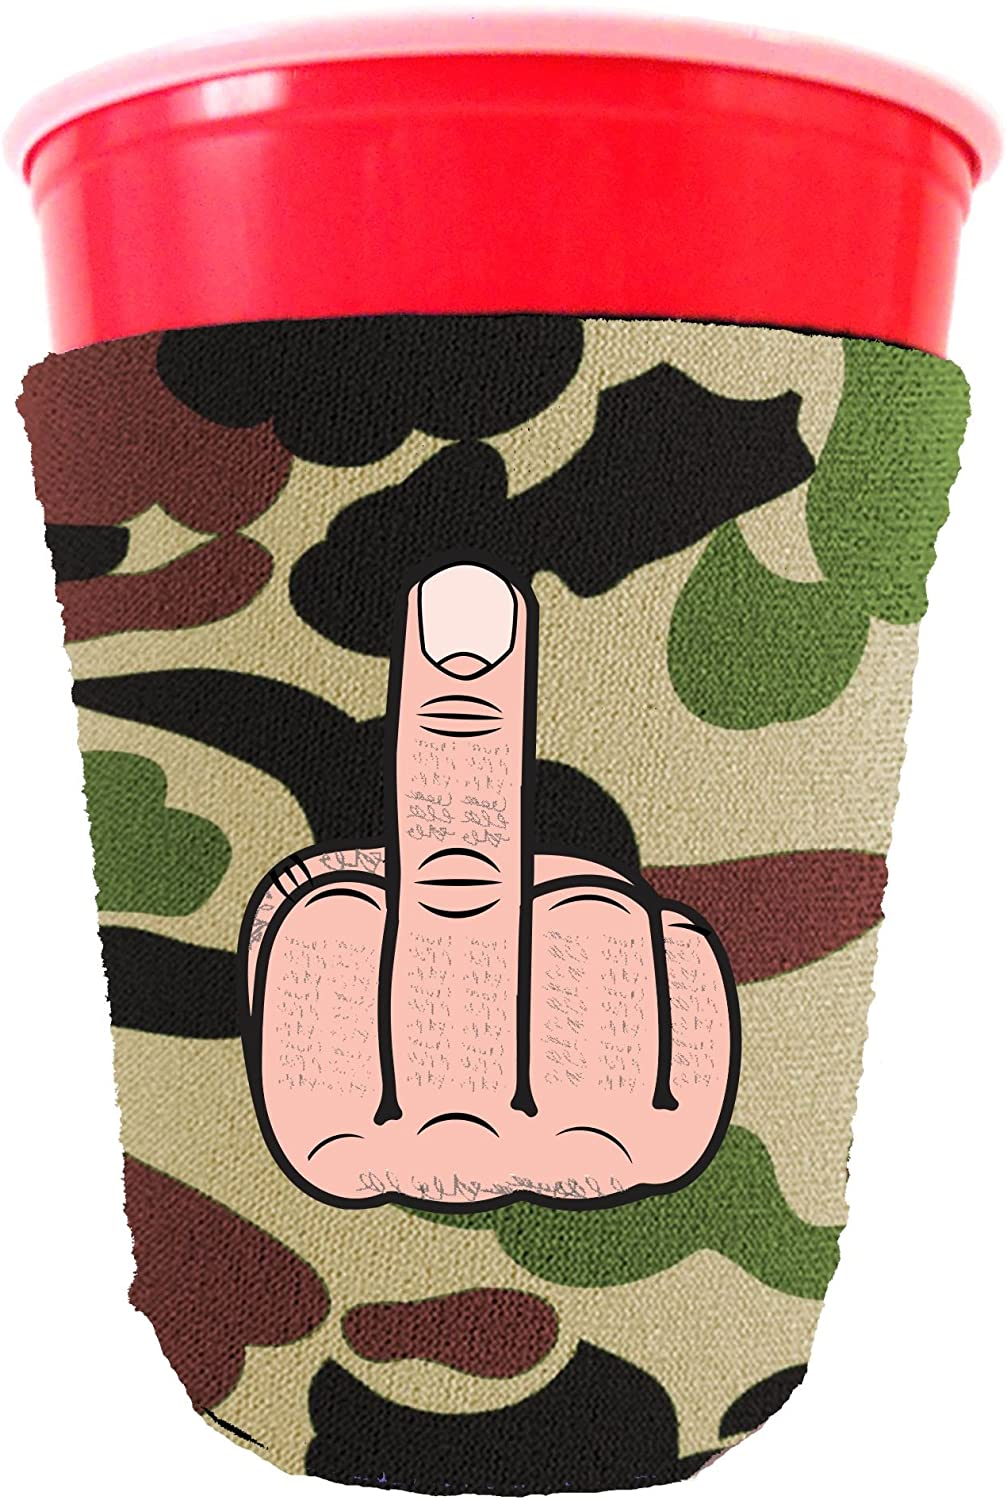 Coolie Junction Middle Finger Funny Party Cup Coolie Camo